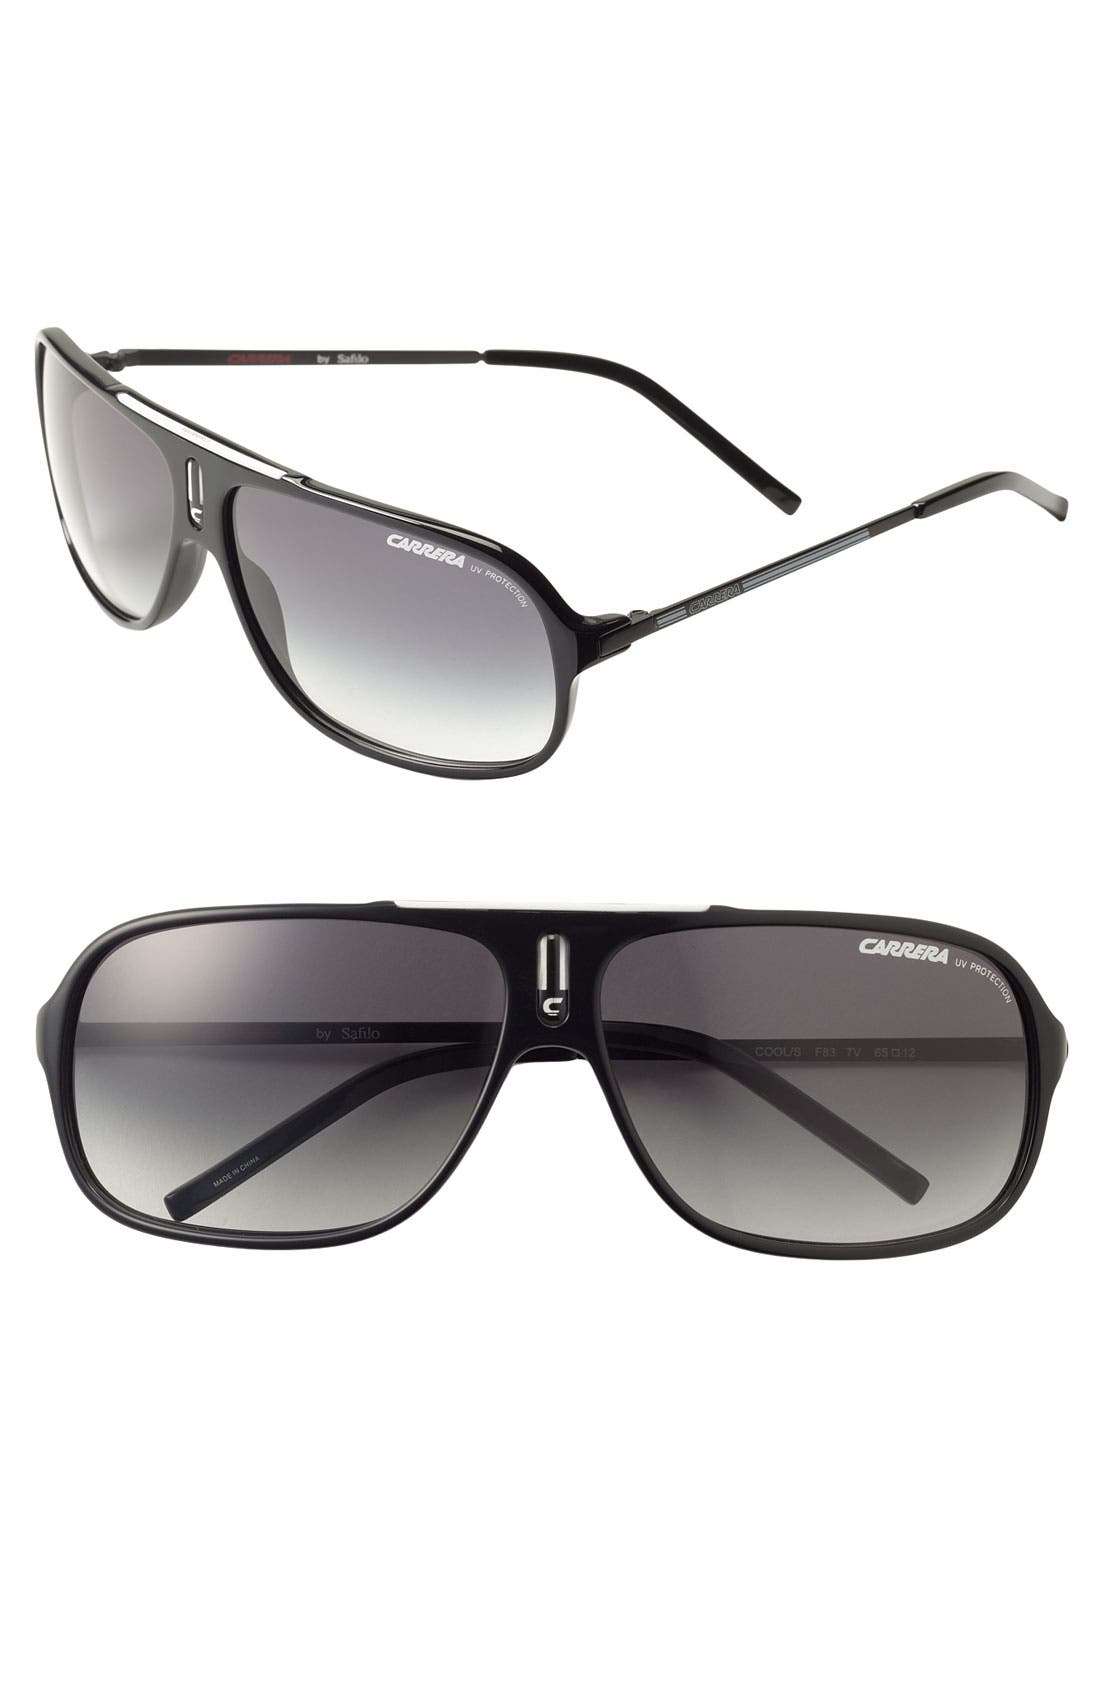 Main Image - Carrera Eyewear 'Cool' 65mm Aviator Sunglasses